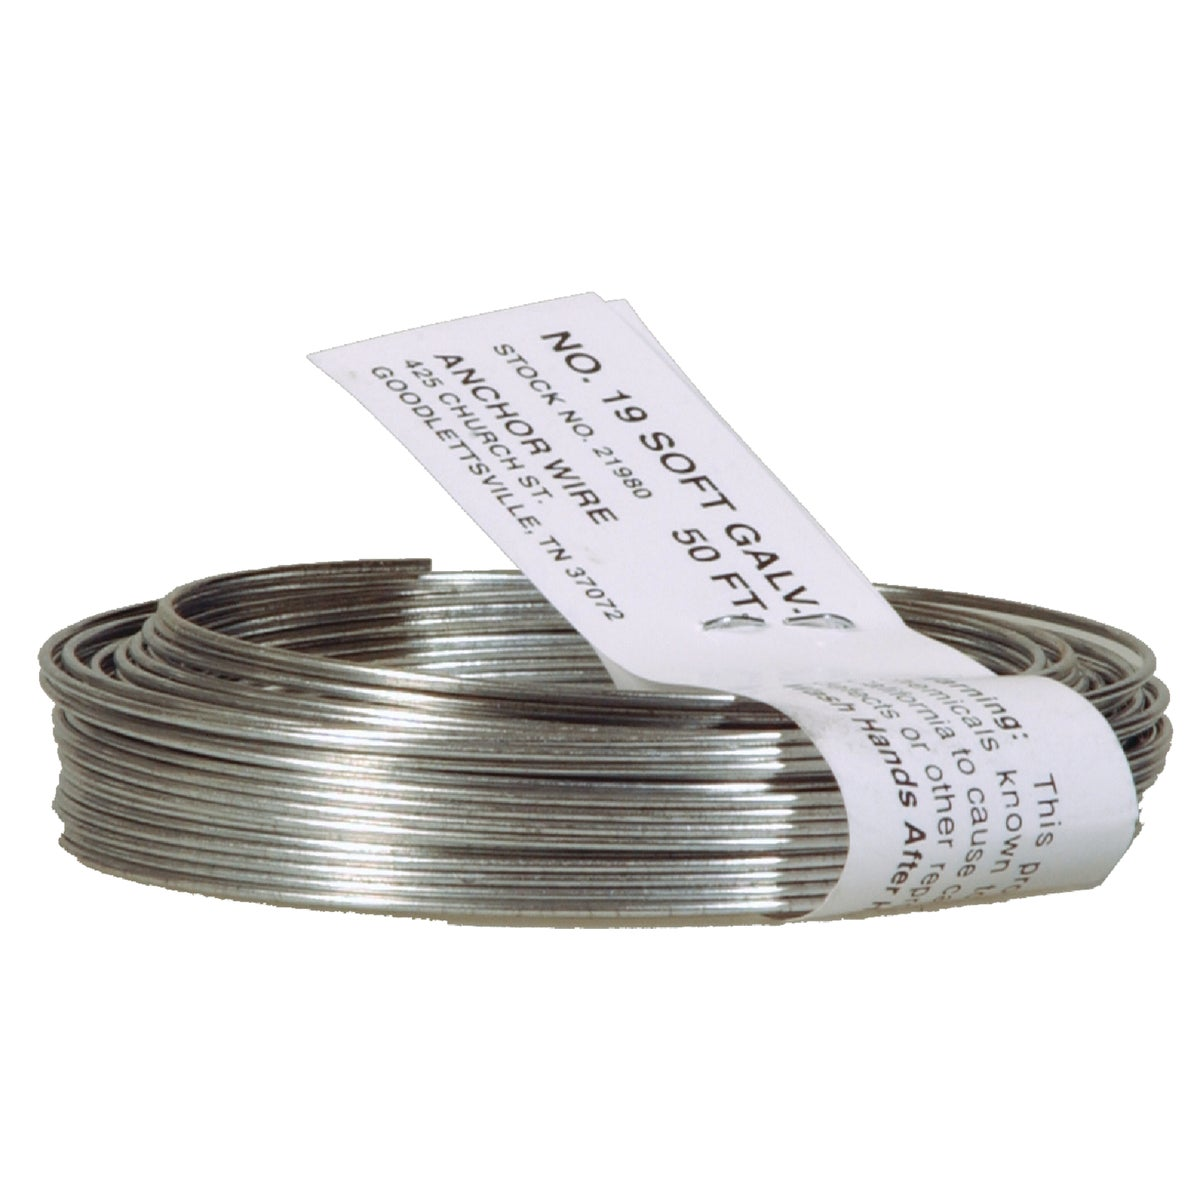 50' 20G BLACK WIRE - 123182 by Hillman Fastener